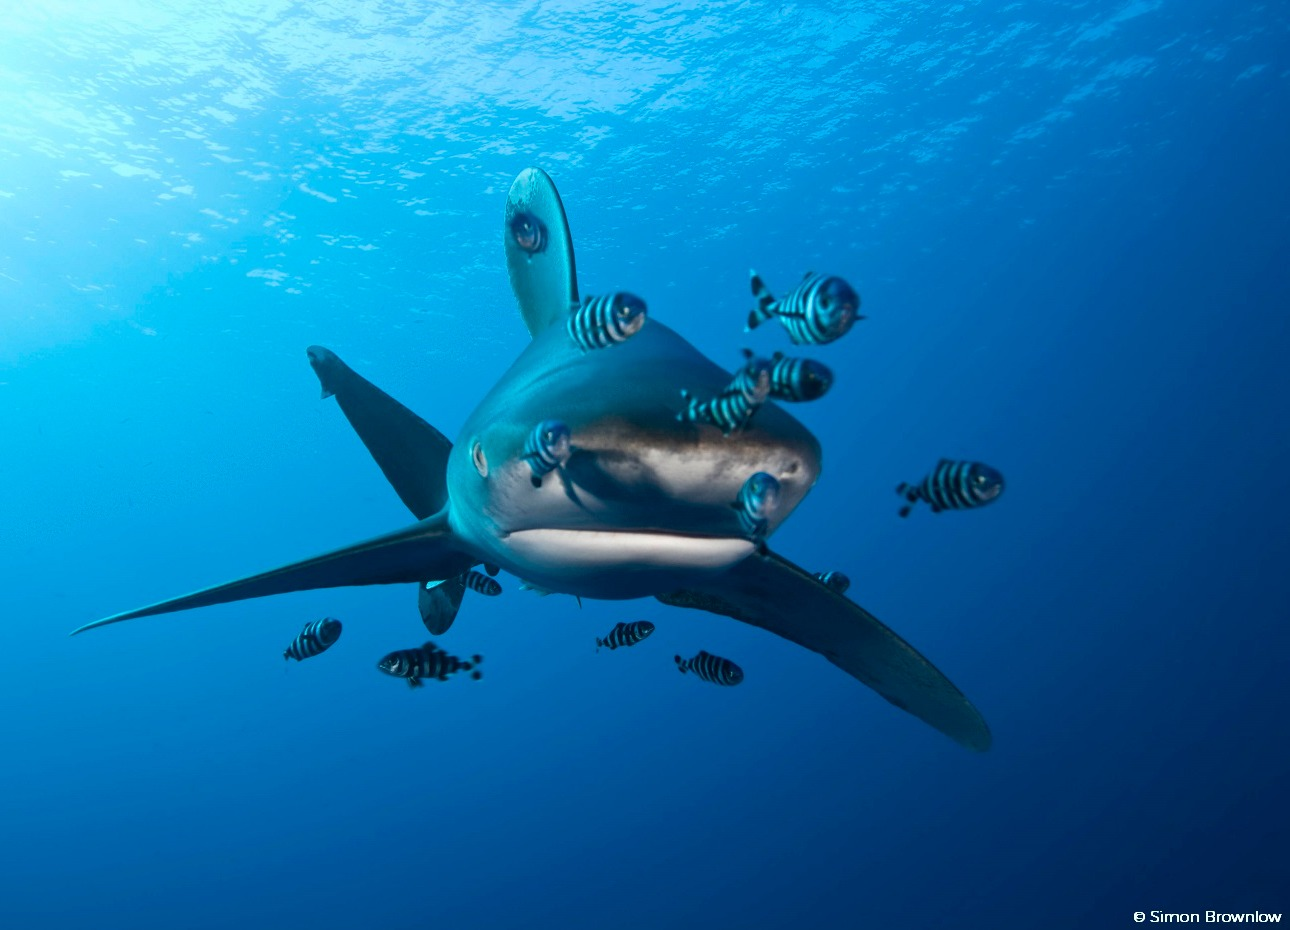 An oceanic whitetip shark captured by Simon Brownlow in Indonesia